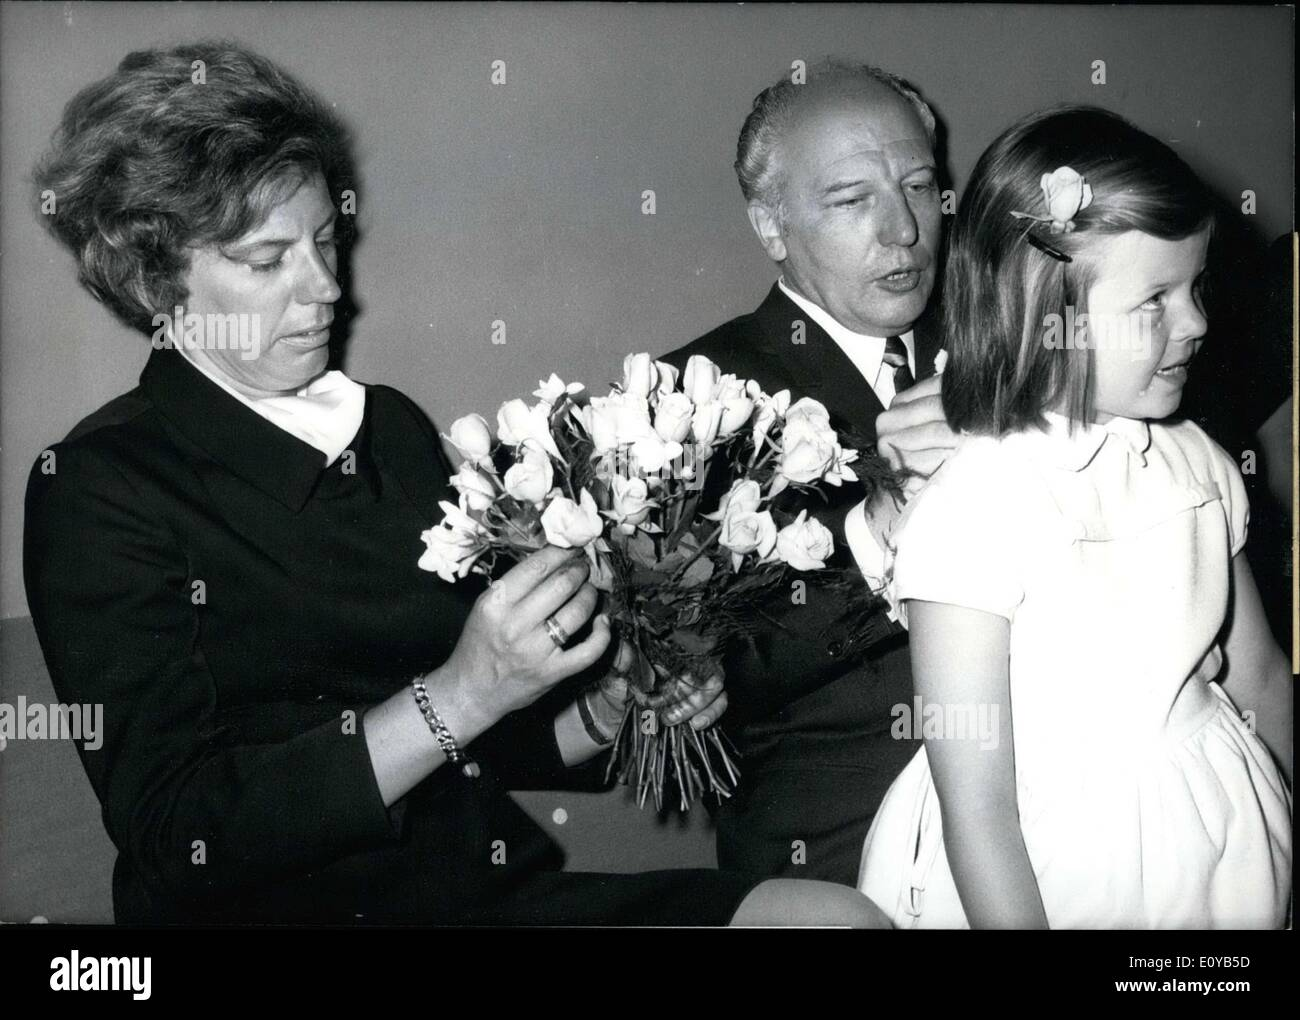 Jul. 18, 1969 - Walter Scheel marries in Munich. The FDP chairman Walter Scheel married doctor Mildred Wirtz (37). Mildred Wirtz has a six year old daughter. It is the politician's second marriage. He brings a 24 year old son to this marriage. Pictured: The last arrangements before the marriage ceremony: Dr. Wirtz arranges her bridal bouquet and Scheel checks the fit of the dress of future step daughter Cornelia. - Stock Image